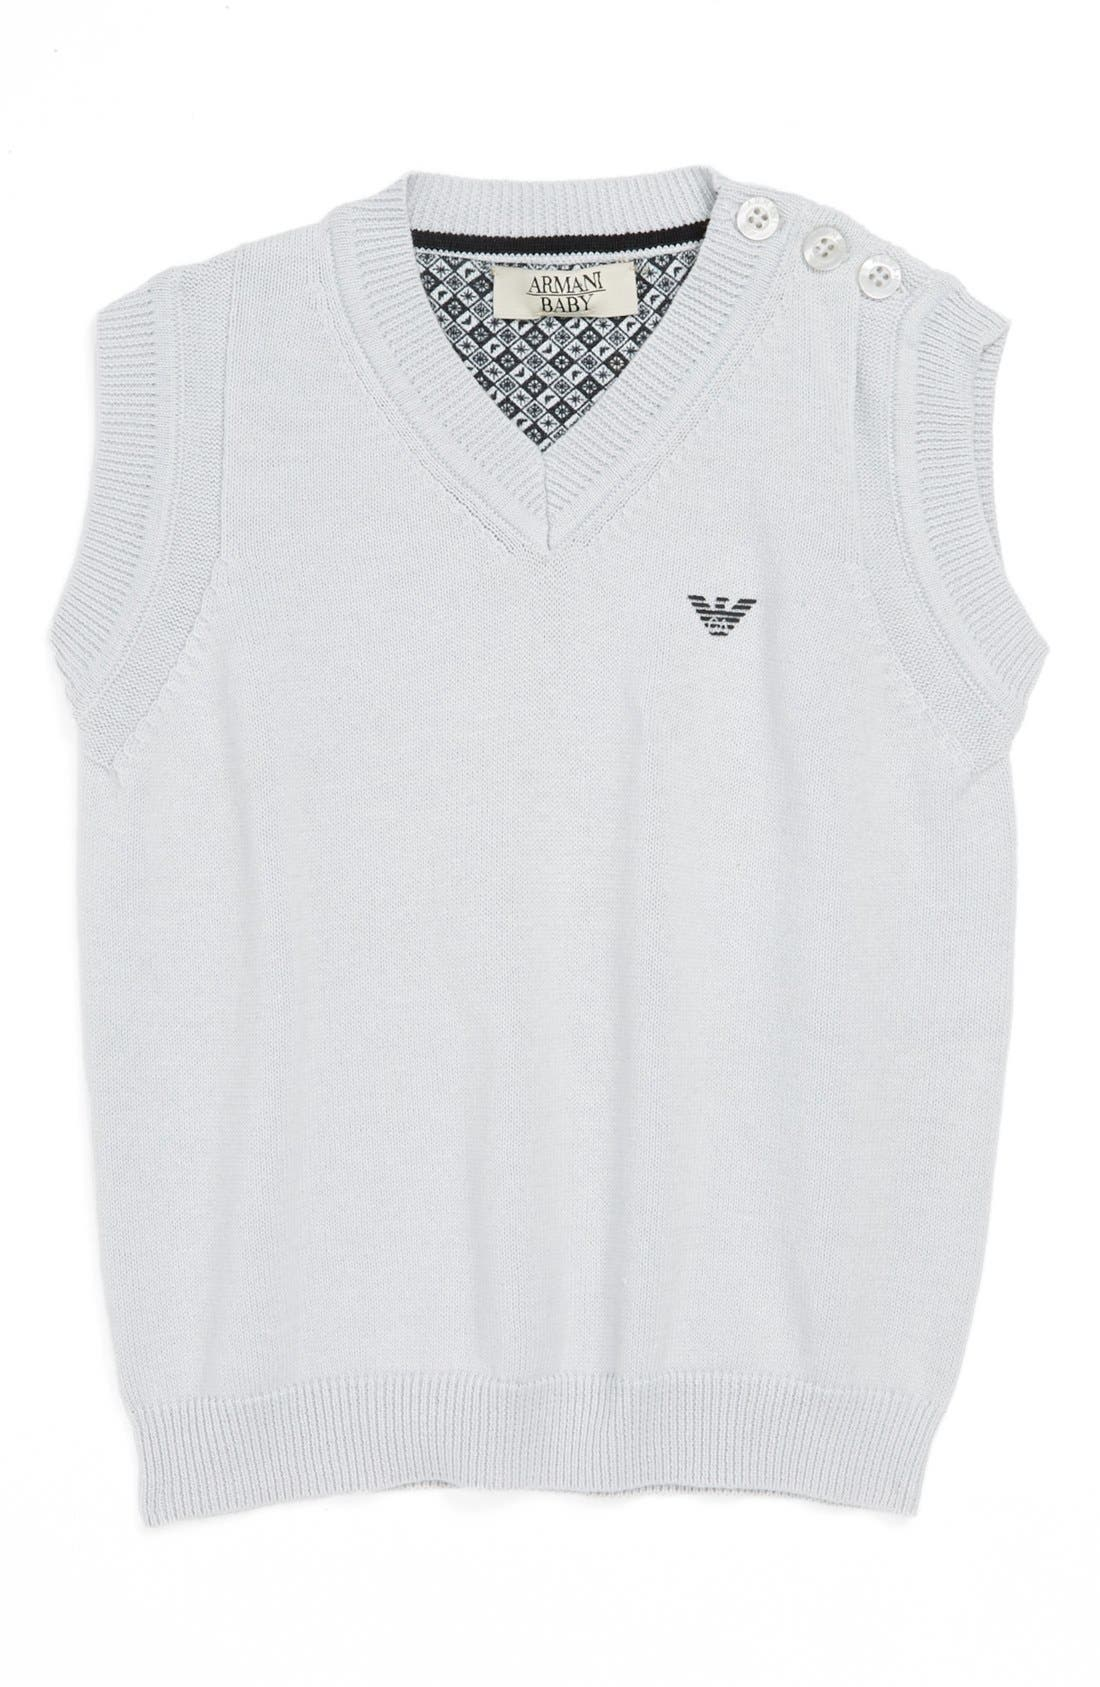 Alternate Image 1 Selected - Armani Junior Cotton Sweater Vest (Baby Boys)